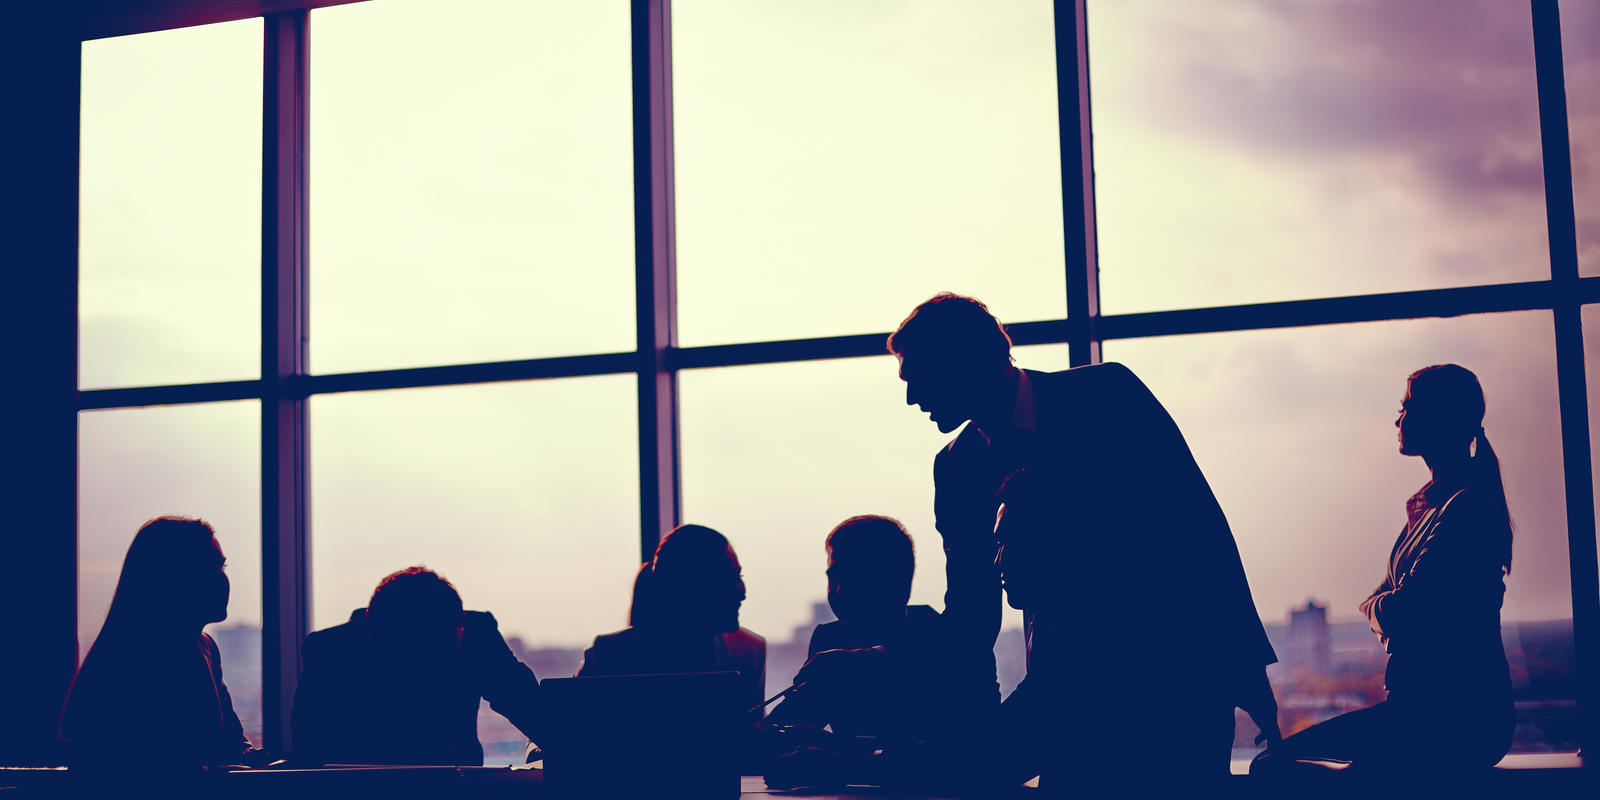 Corporate Meeting Stock Imagery Silhouettes Against Glass Window